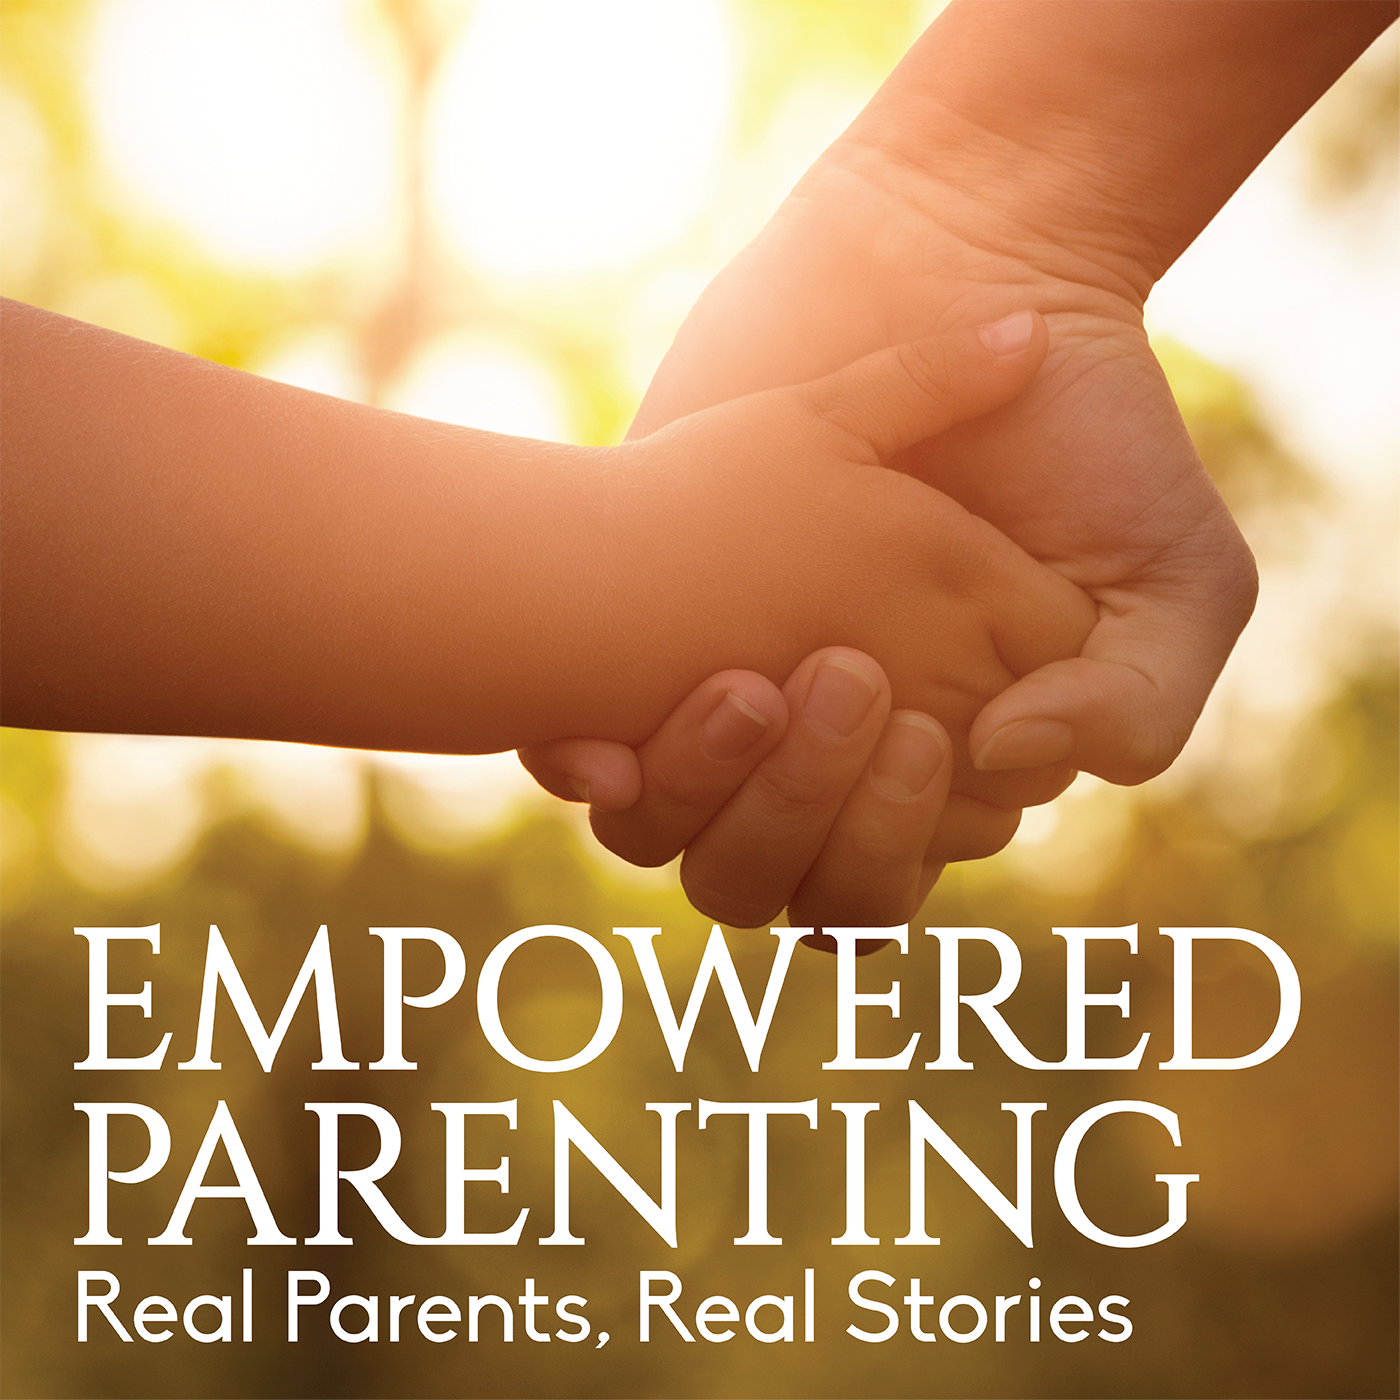 Empowered Parenting: Real Parents, Real Stories